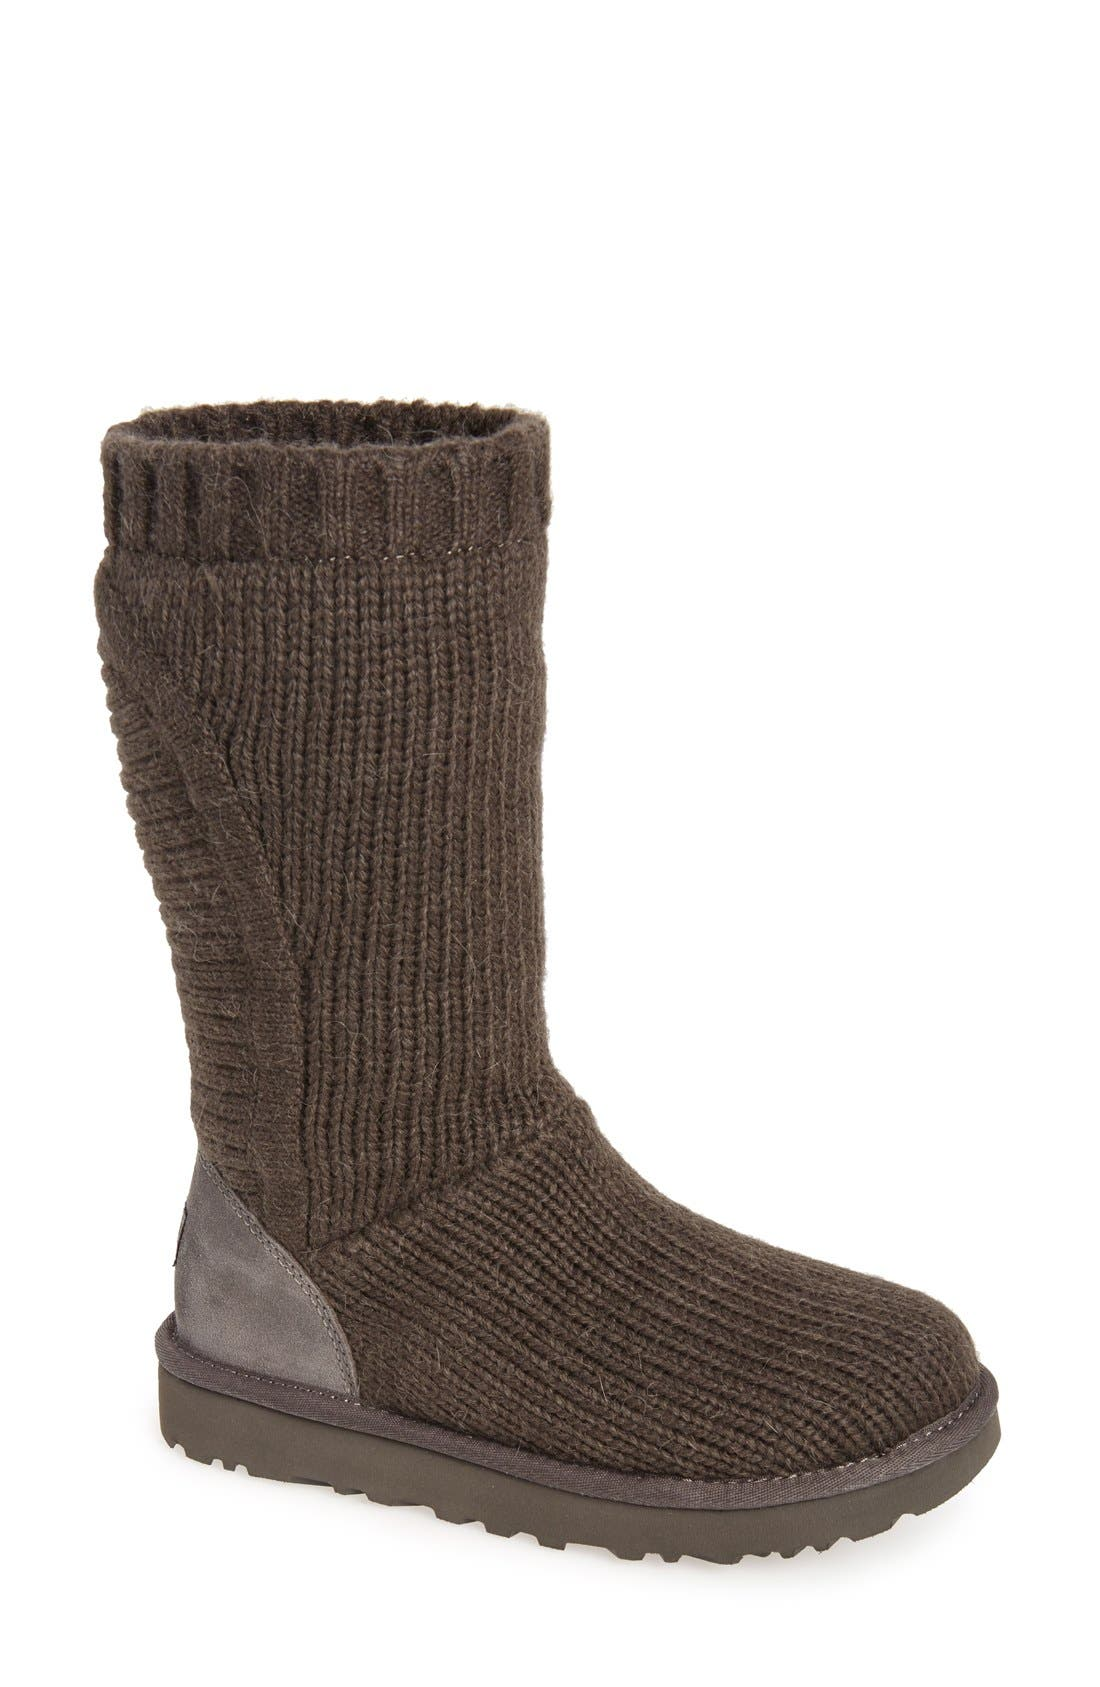 Main Image - UGG® 'Capra' Ribbed Knit Genuine Shearling Lined Boot (Women)